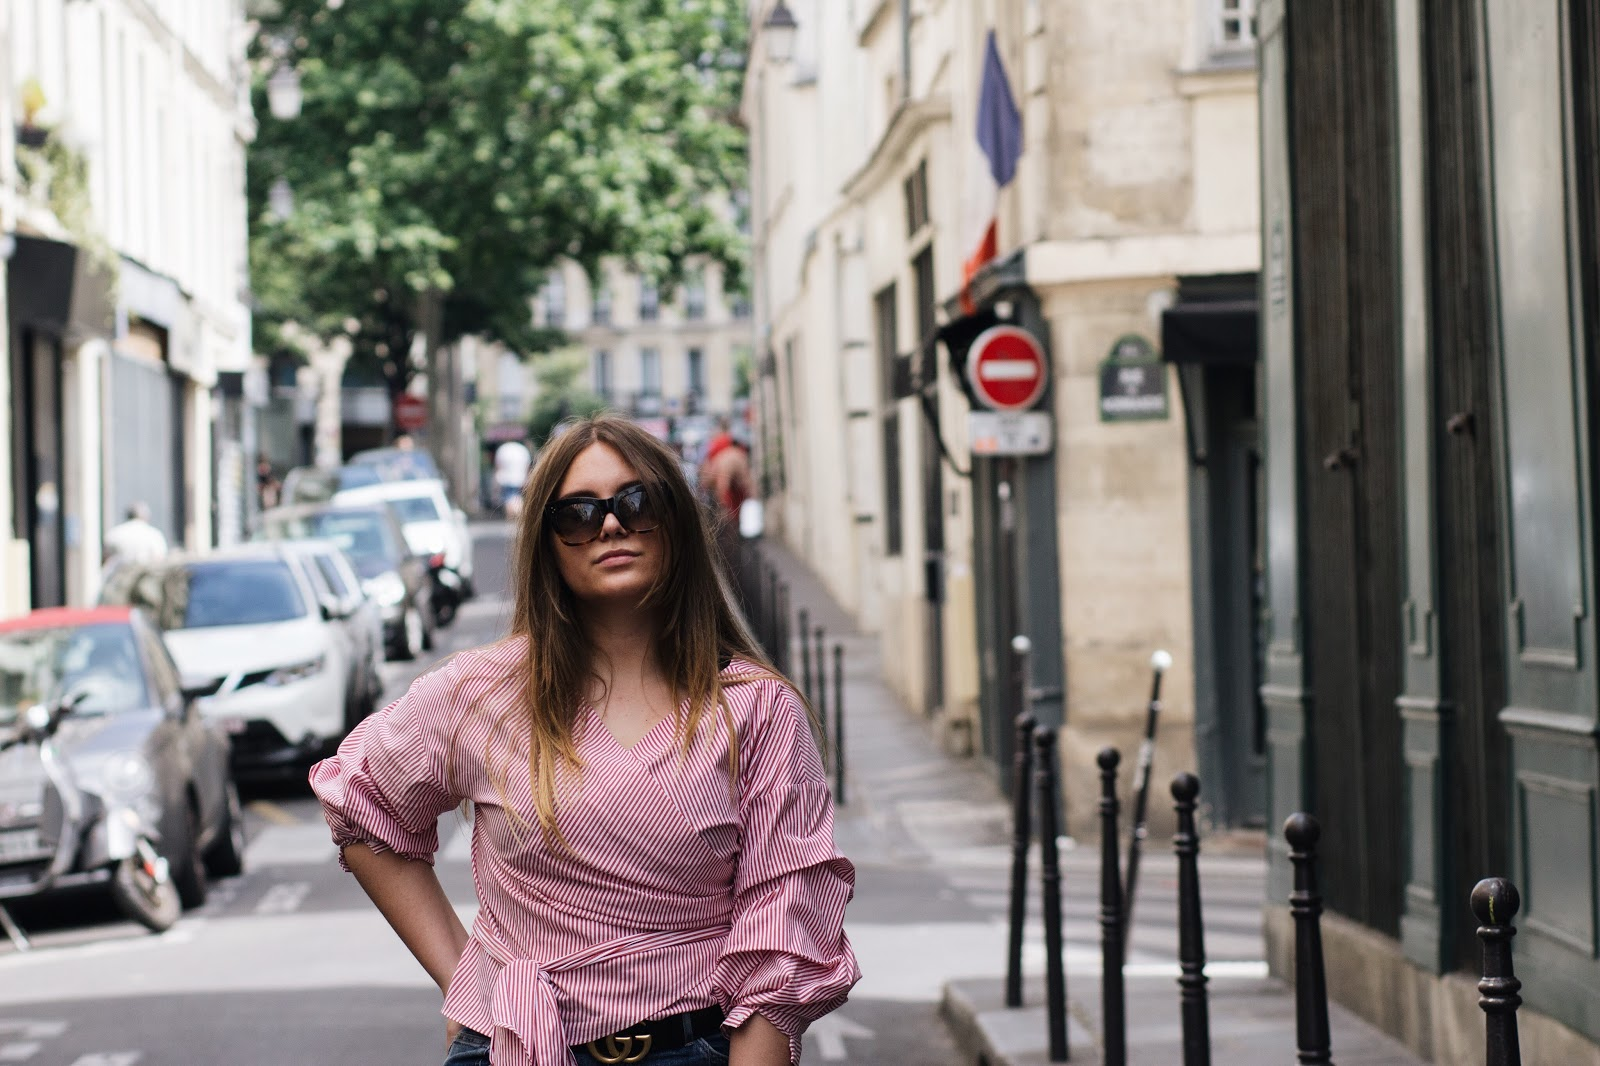 blogger dominique candido wearing a zara shirt h&m jeans alexander mcqueen sneakers celine sunglasses and a balanciaga bag in paris